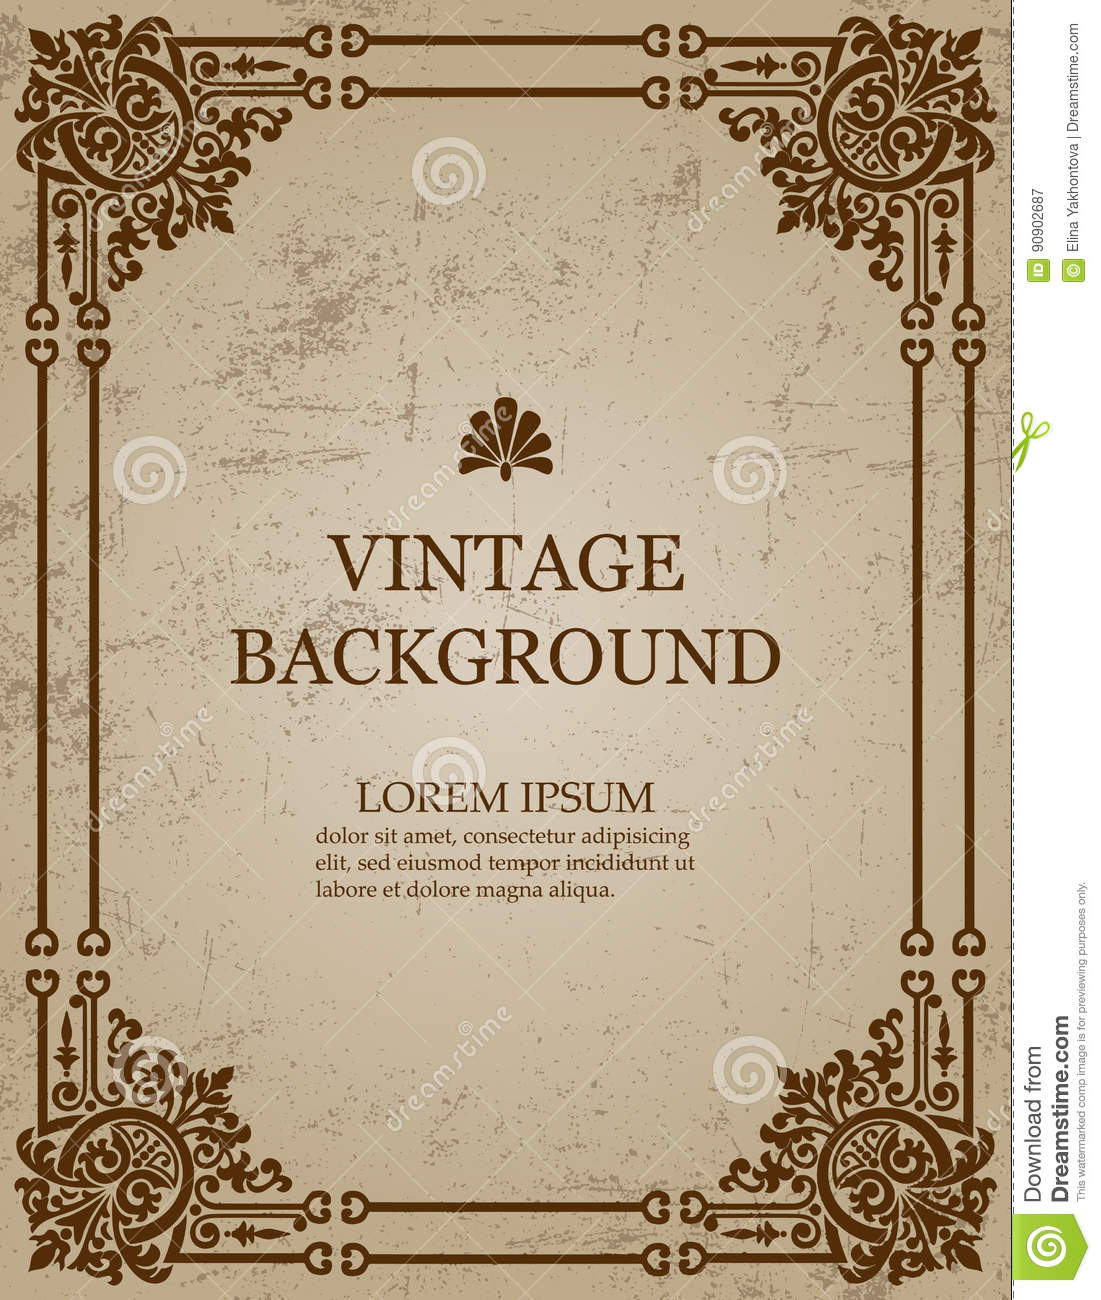 How To Create A Book Cover Design ~ Vector vintage old paper background with royal pattern frame as a